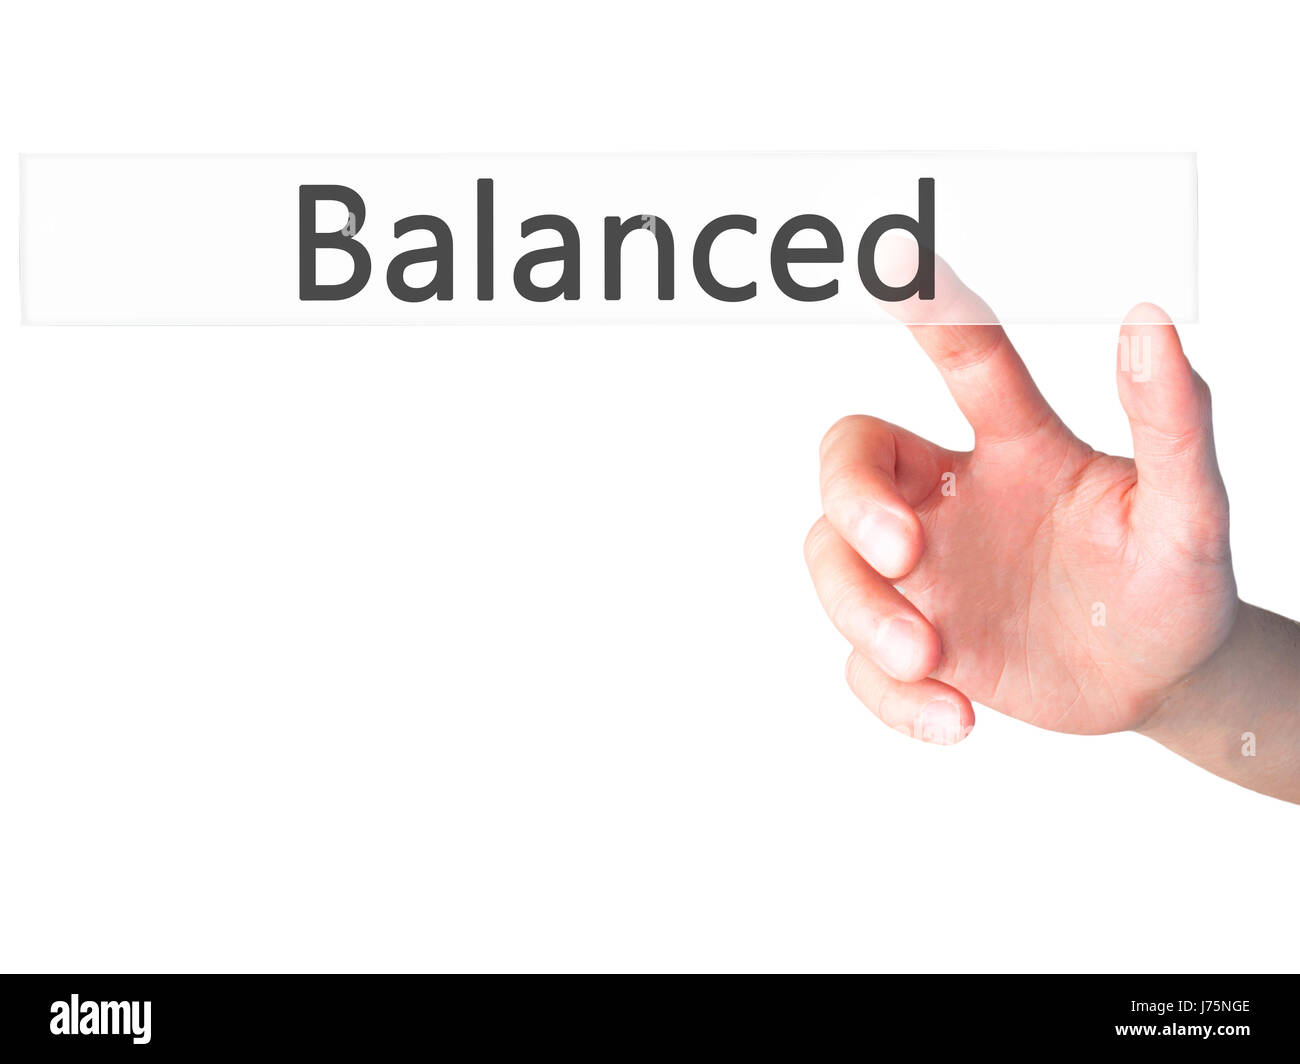 Balanced - Hand pressing a button on blurred background concept . Business, technology, internet concept. Stock - Stock Image